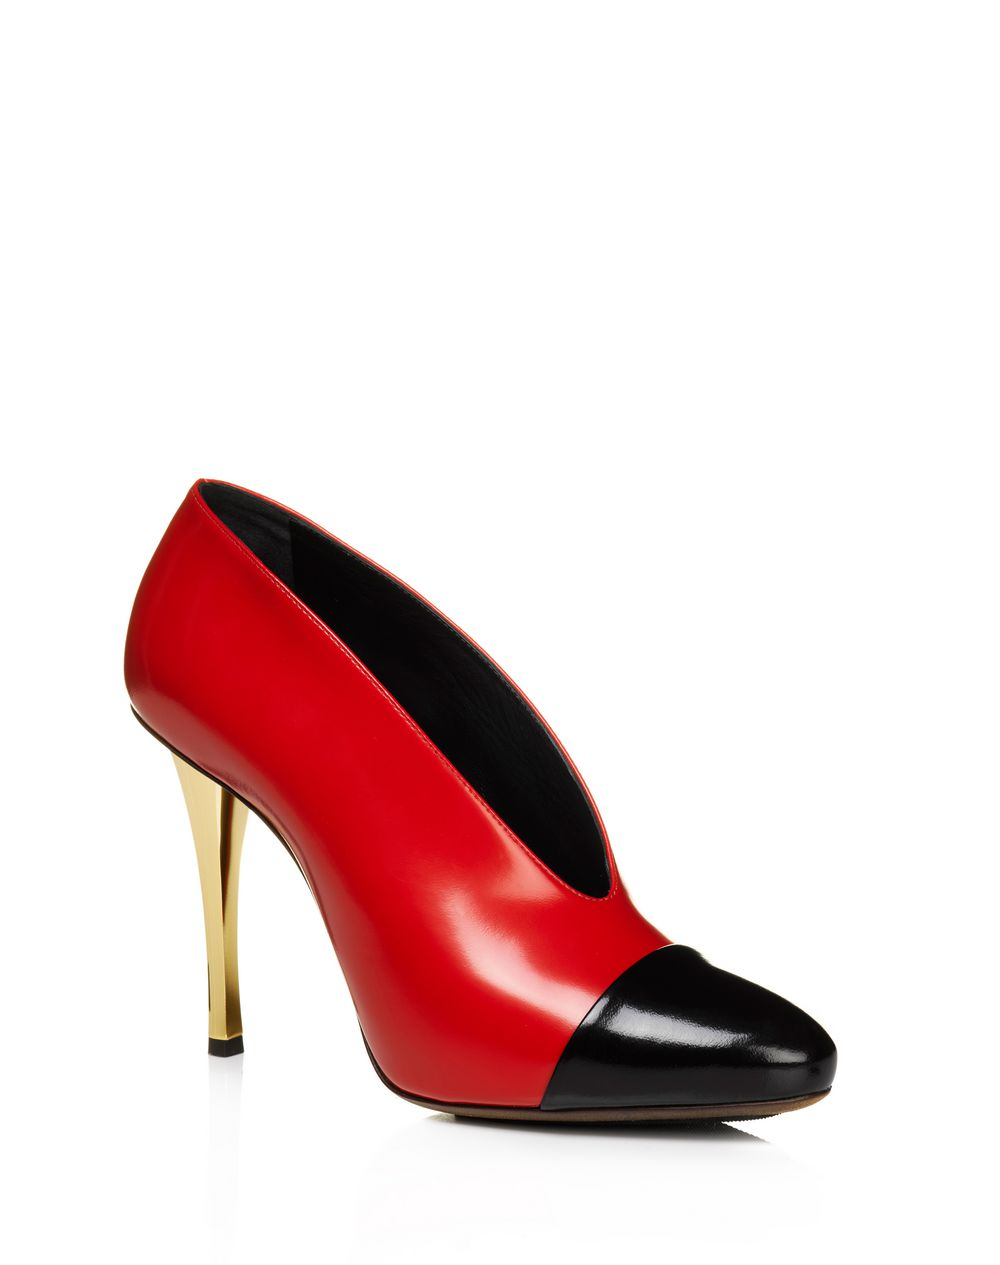 Escarpin stiletto bi-couleur - Lanvin